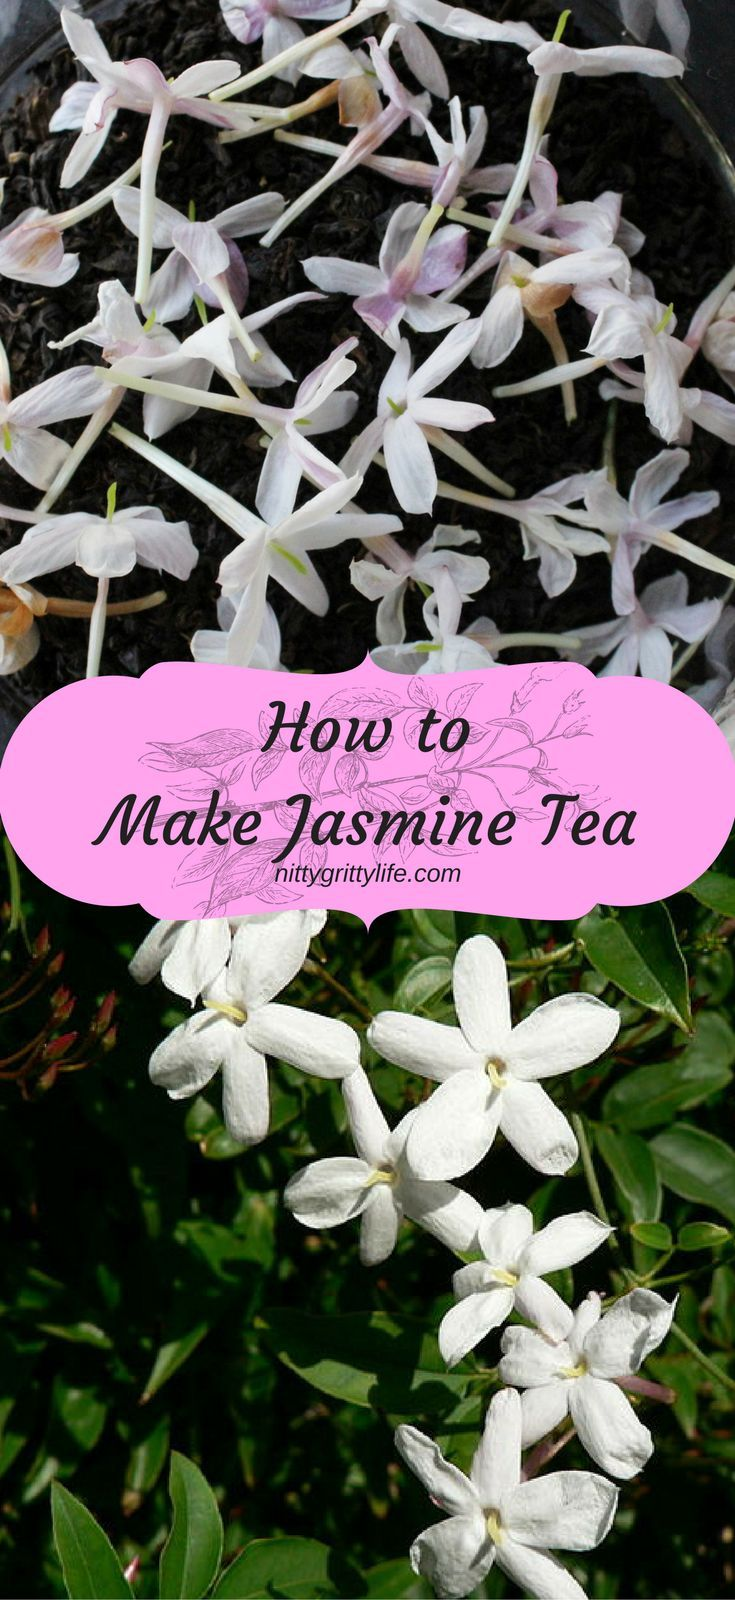 "Jasmine tea is an exotically scented, sensually delicious, but simple tea to make at home. Save money & ""tea"" like royalty with this DIY preparation."